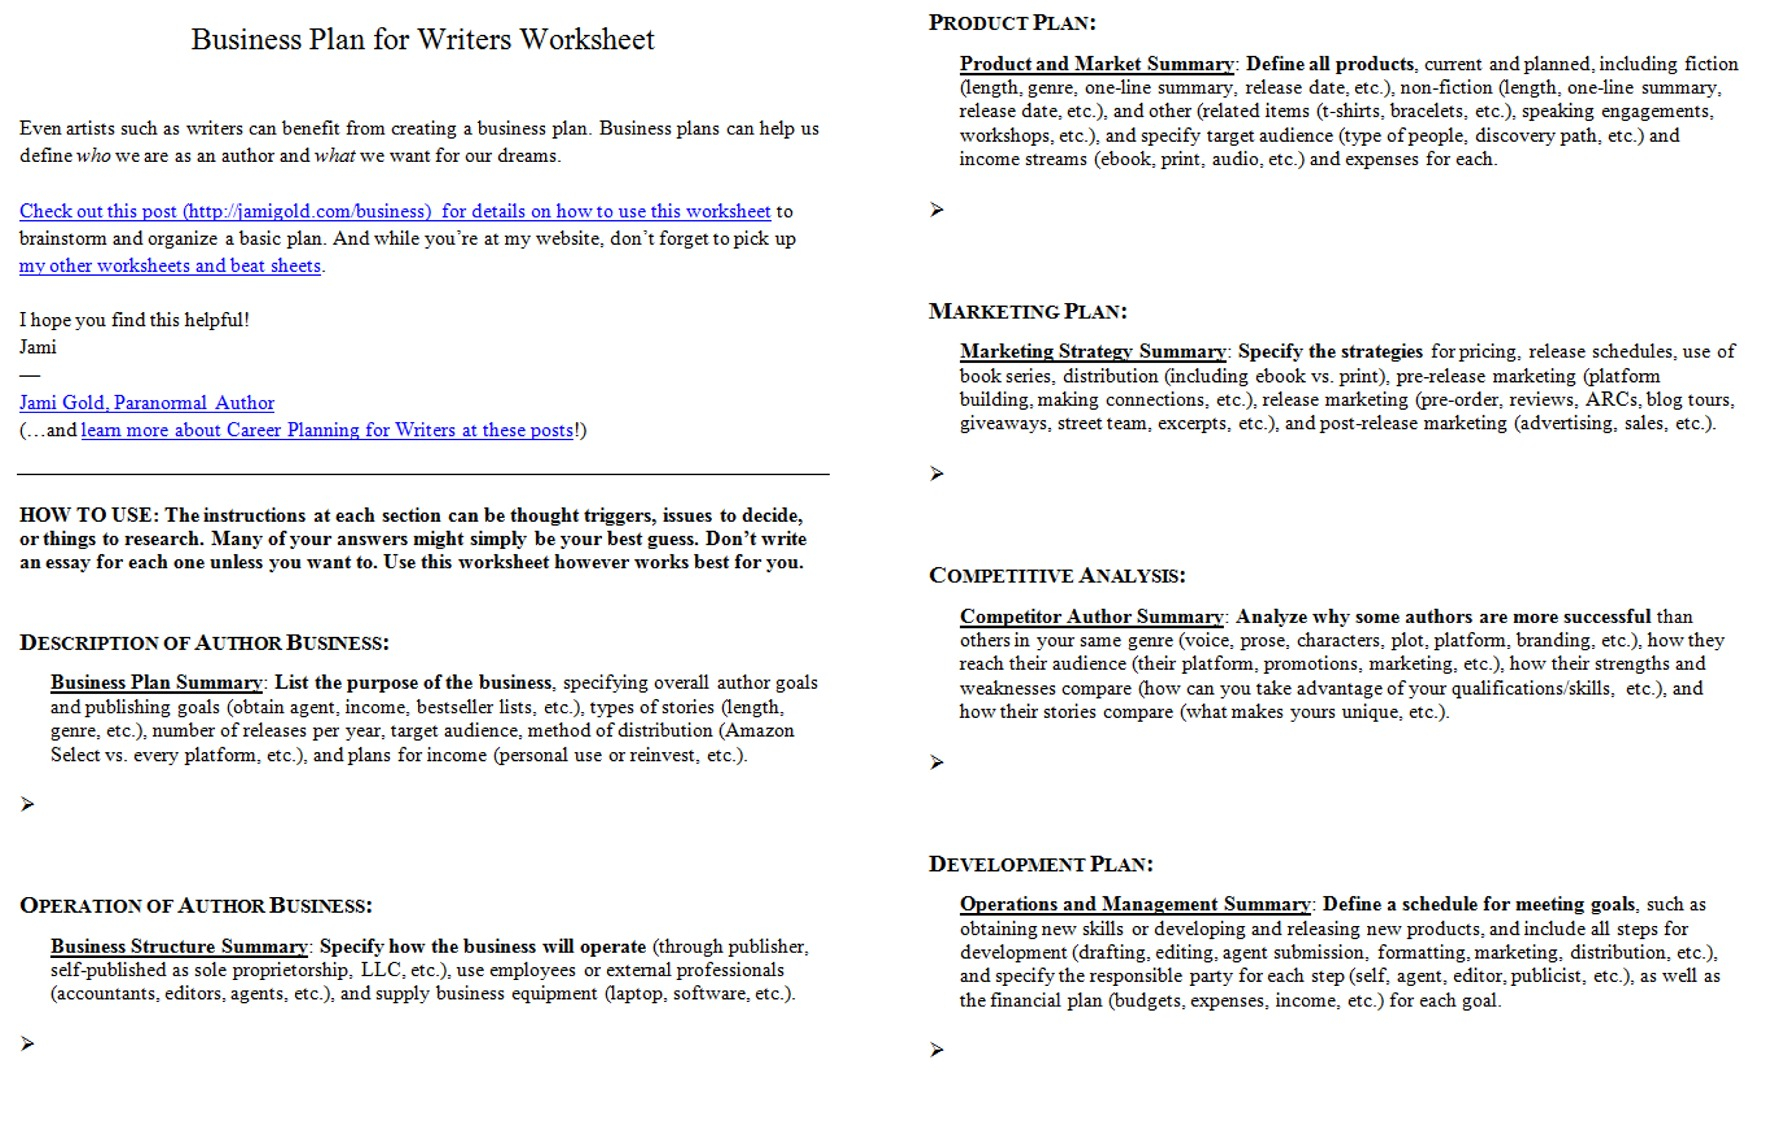 Weirdmailus  Personable Worksheets For Writers  Jami Gold Paranormal Author With Goodlooking Screen Shot Of Both Pages Of The Business Plan For Writers Worksheet With Delectable Wizard Of Oz Questions Worksheet Also Worksheet For Middle School In Addition Ks Fractions Worksheet And Math Facts Addition And Subtraction Worksheets As Well As Esl Sentence Structure Worksheet Additionally Position Words Worksheet From Jamigoldcom With Weirdmailus  Goodlooking Worksheets For Writers  Jami Gold Paranormal Author With Delectable Screen Shot Of Both Pages Of The Business Plan For Writers Worksheet And Personable Wizard Of Oz Questions Worksheet Also Worksheet For Middle School In Addition Ks Fractions Worksheet From Jamigoldcom